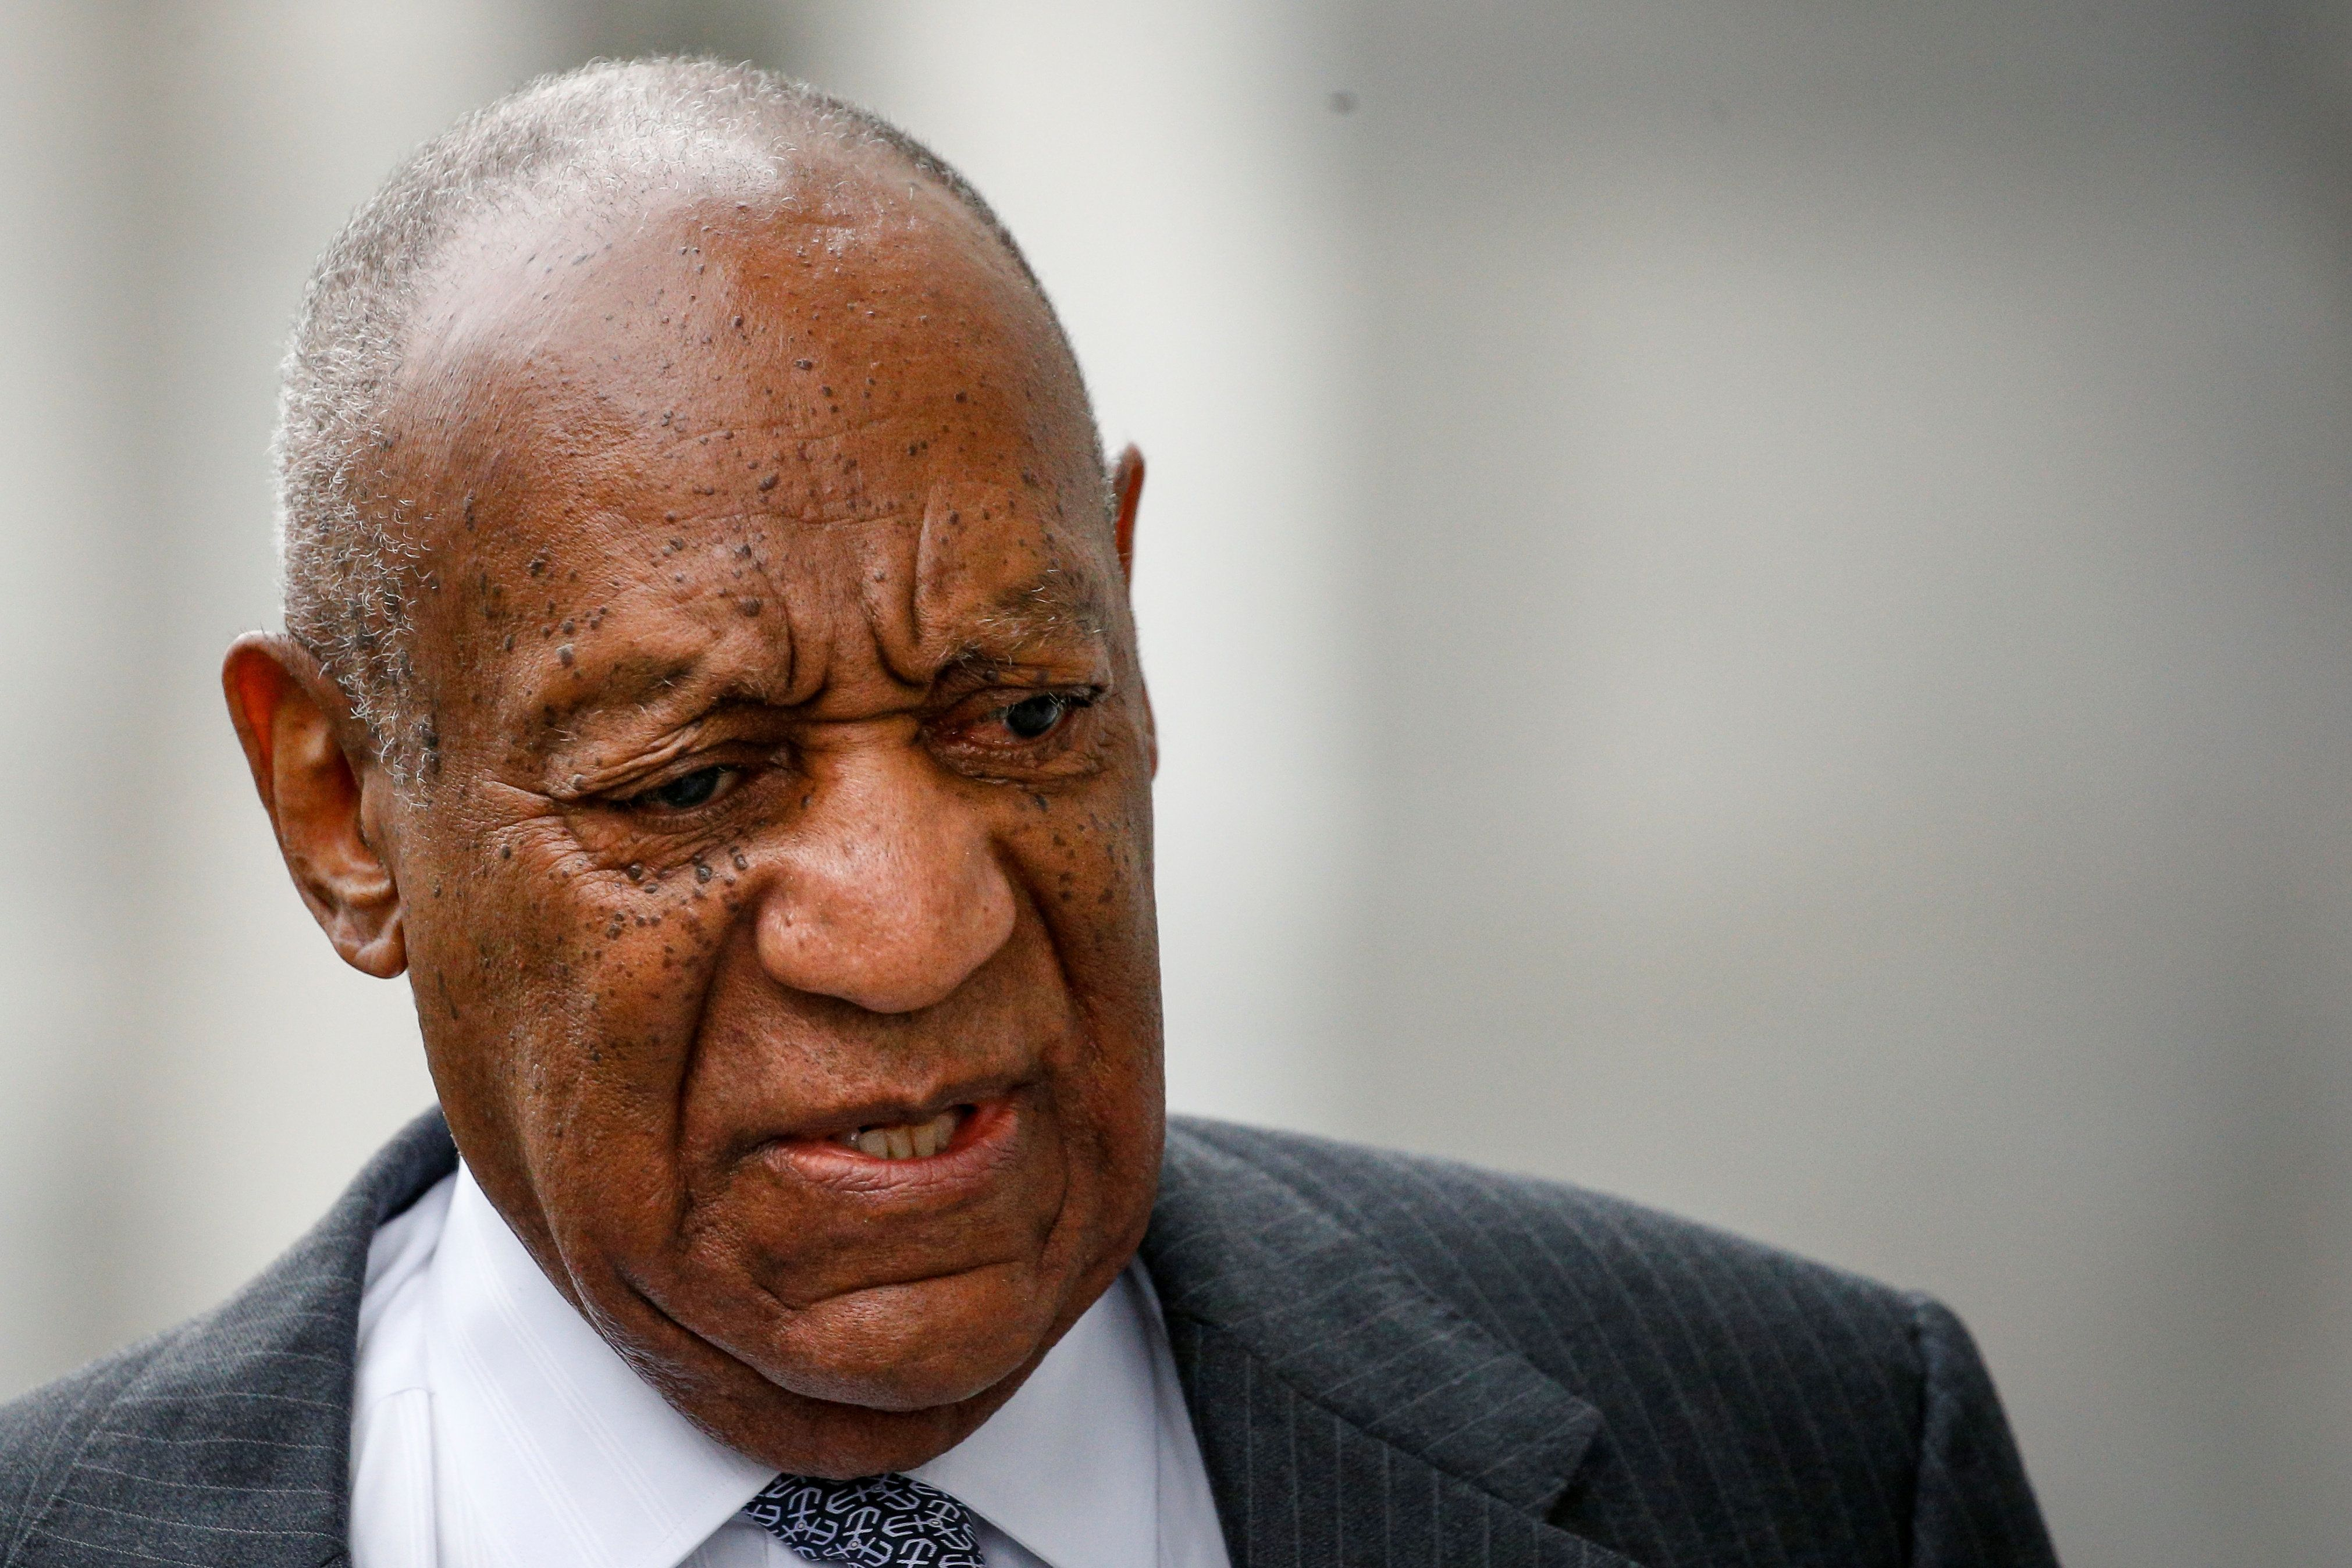 Actor and comedian Bill Cosby arrives for jury selection for his sexual assault trial at the Montgomery County Courthouse in Norristown, Pennsylvania, U.S. April 3, 2018.  REUTERS/Brendan McDermid